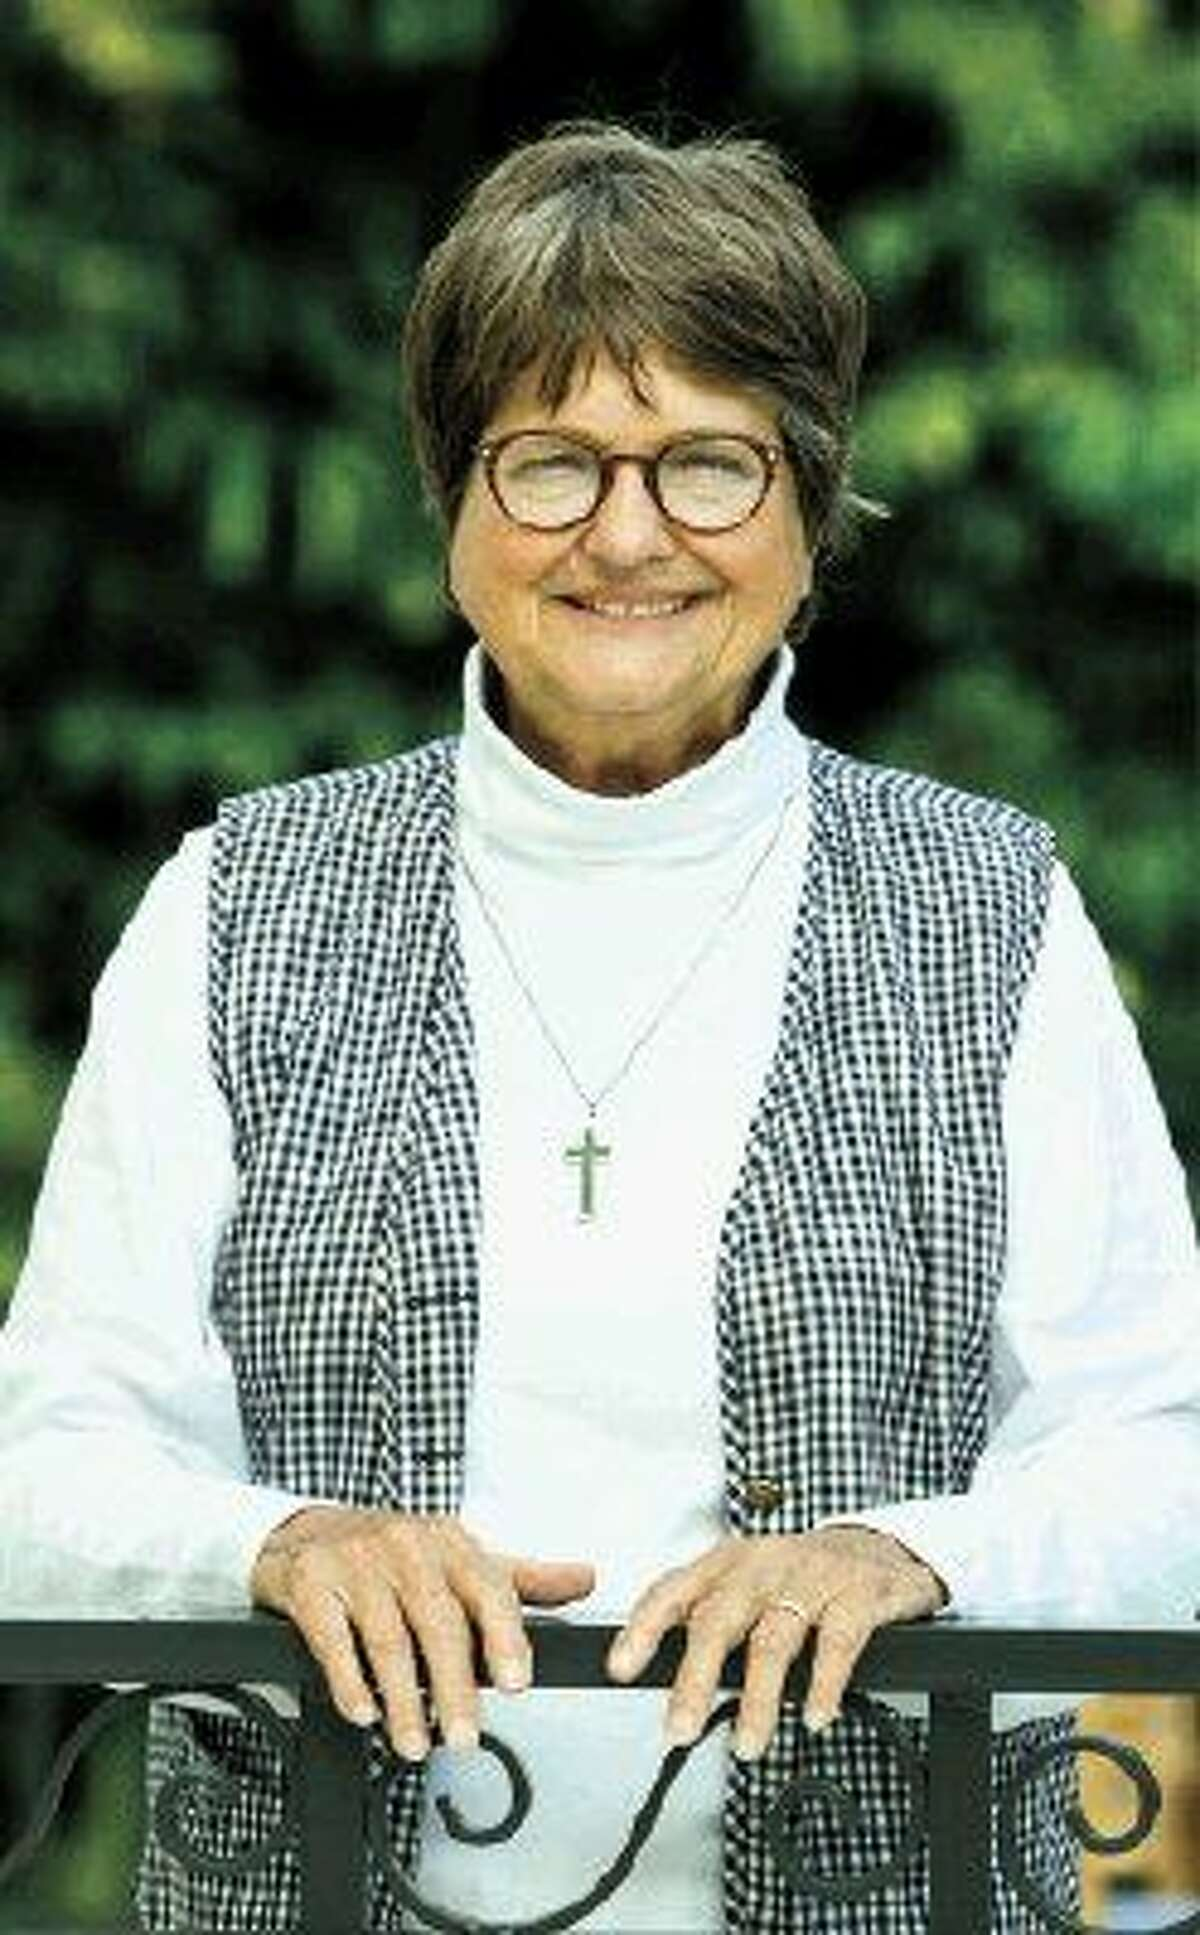 Sister Helen Prejean will speak on her experiences with the death penalty and her recent visit with Pope Francis at Lone Star College-Kingwood on March 1 at 7 p.m. in the Student Conference Center (SCC).